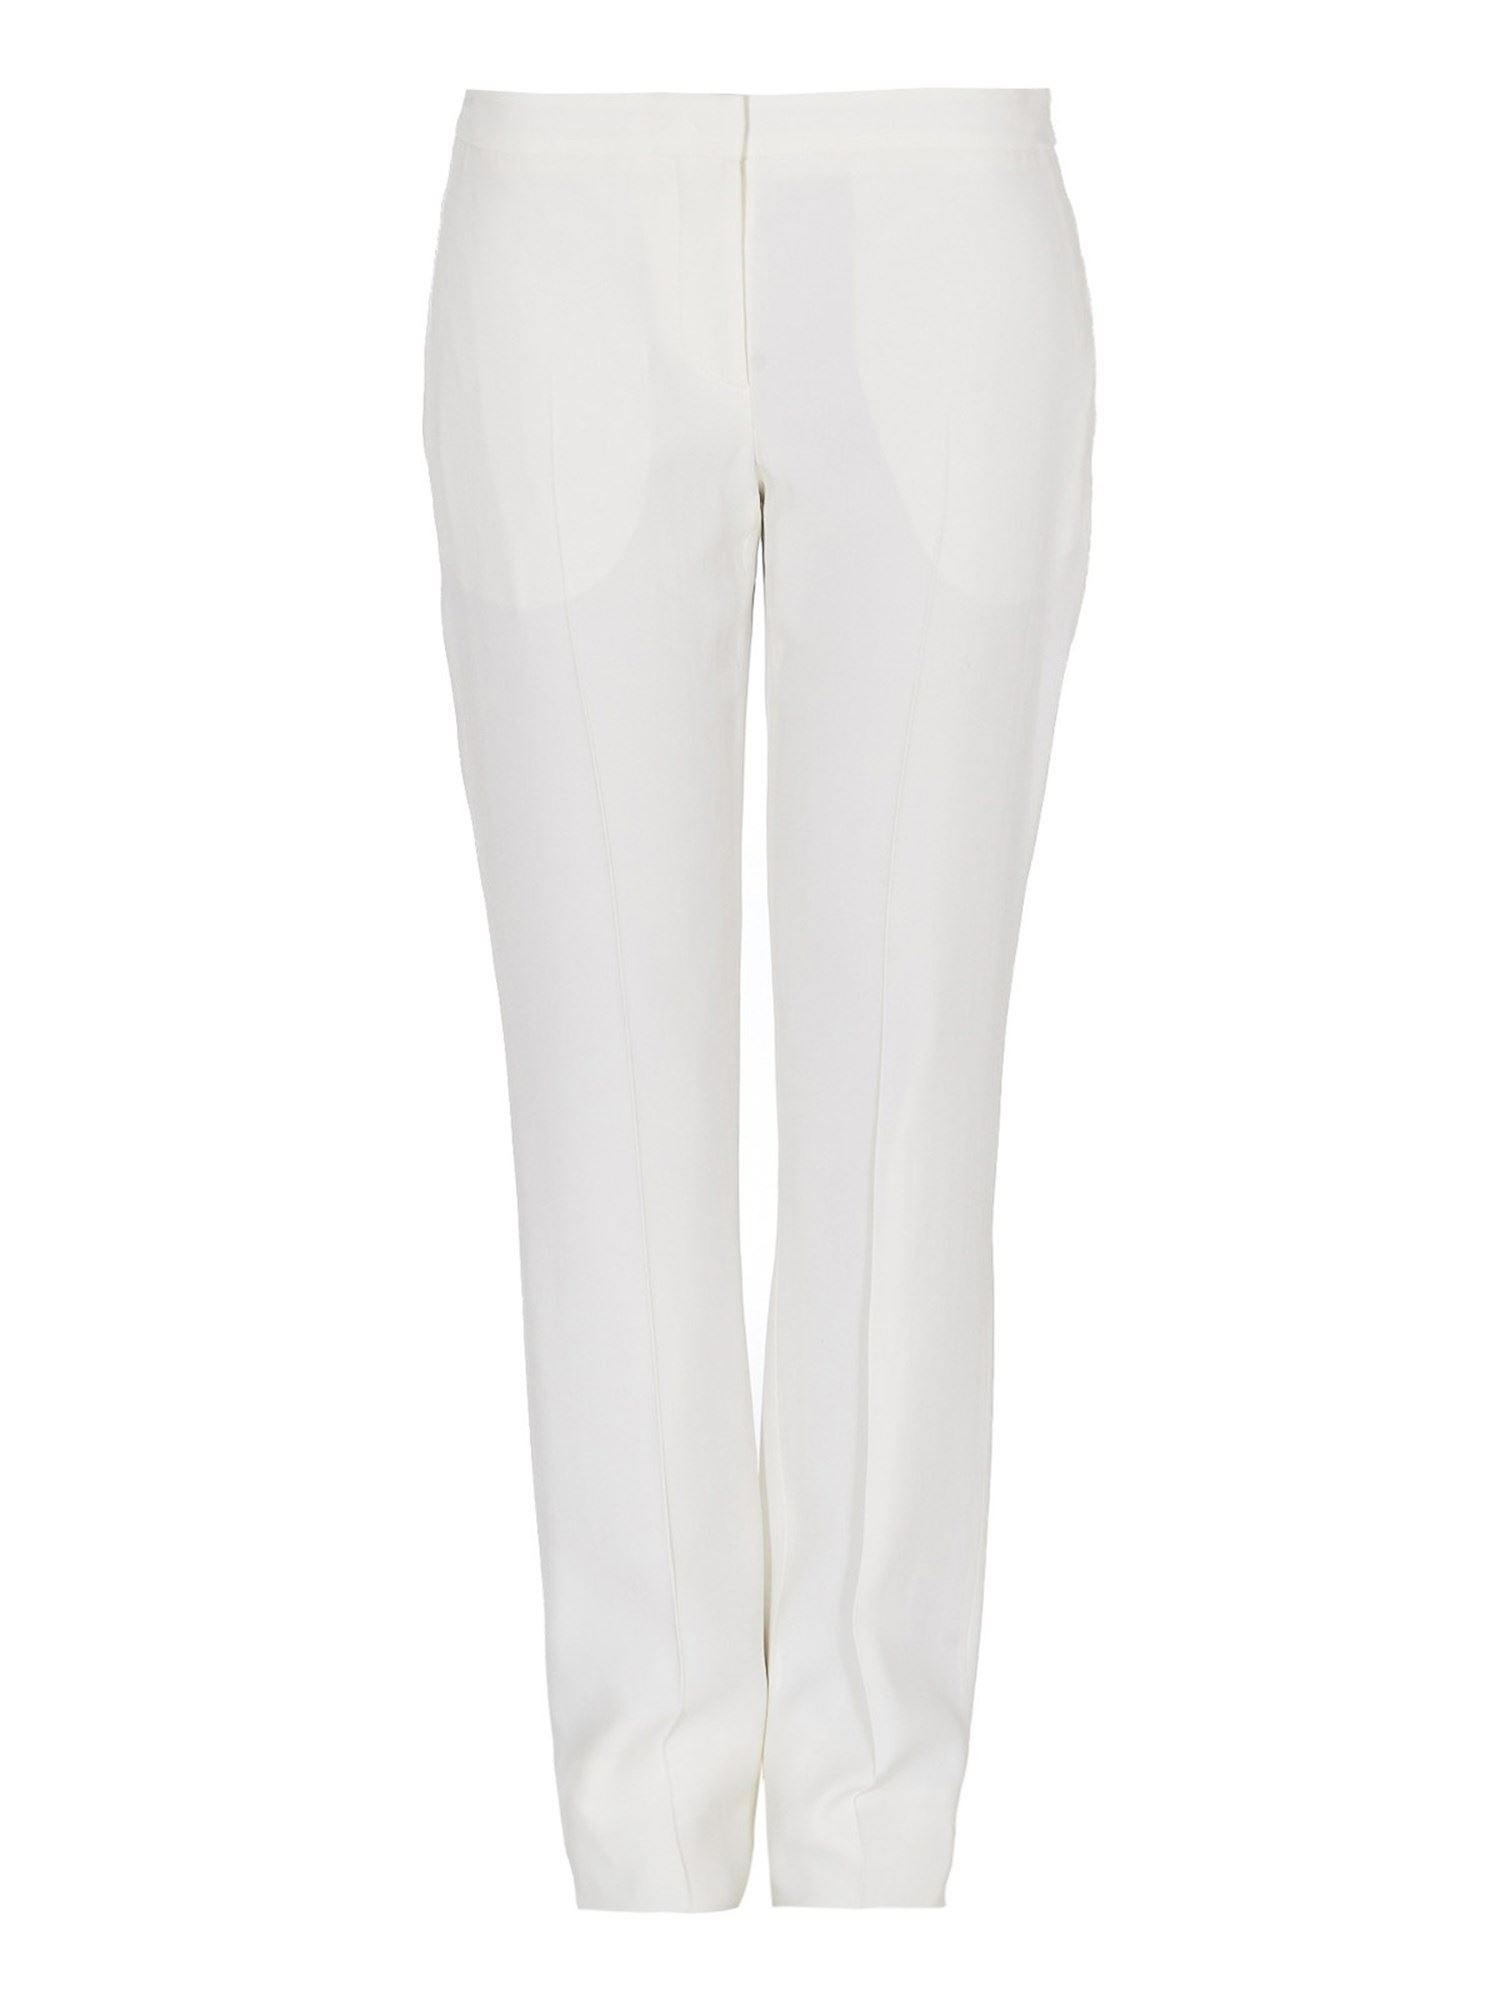 Alexander Mcqueen White Crêpe Cigarette Trousers In White